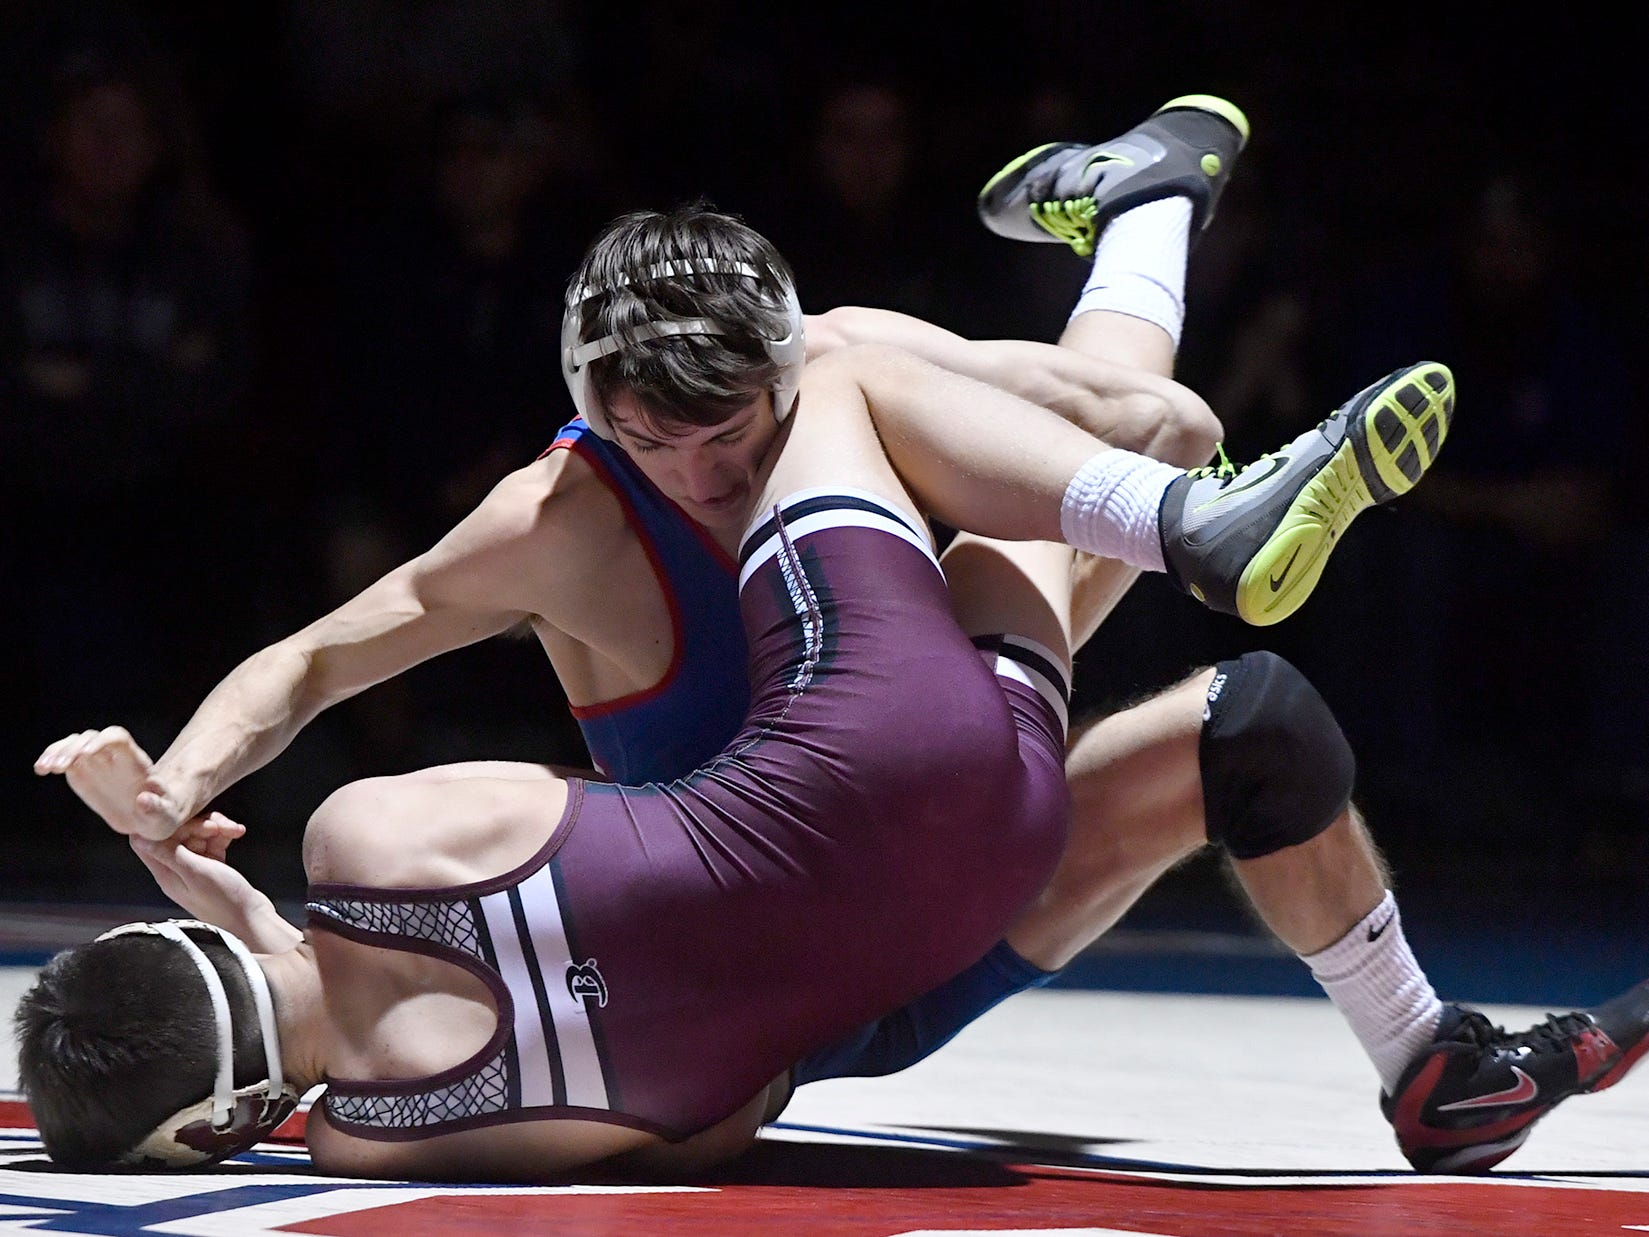 Charles Styk of Spring Grove tries to roll Gettysburg's Ethan Dalton to his back during the 120 pound match, Thursday, January 3, 2019